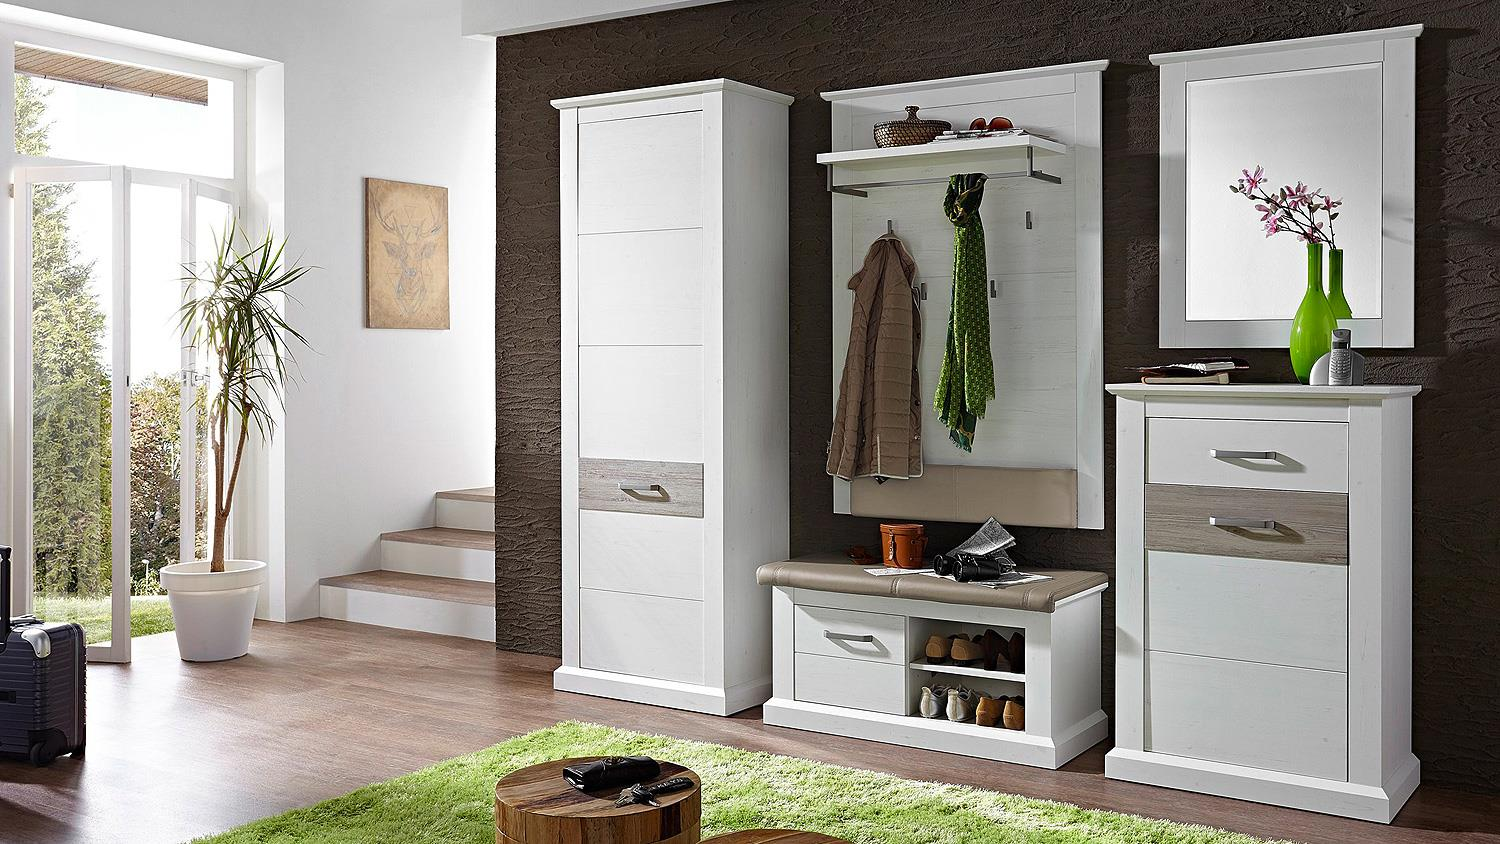 garderobenset 4 modena garderobe in pinie hell und taupe. Black Bedroom Furniture Sets. Home Design Ideas